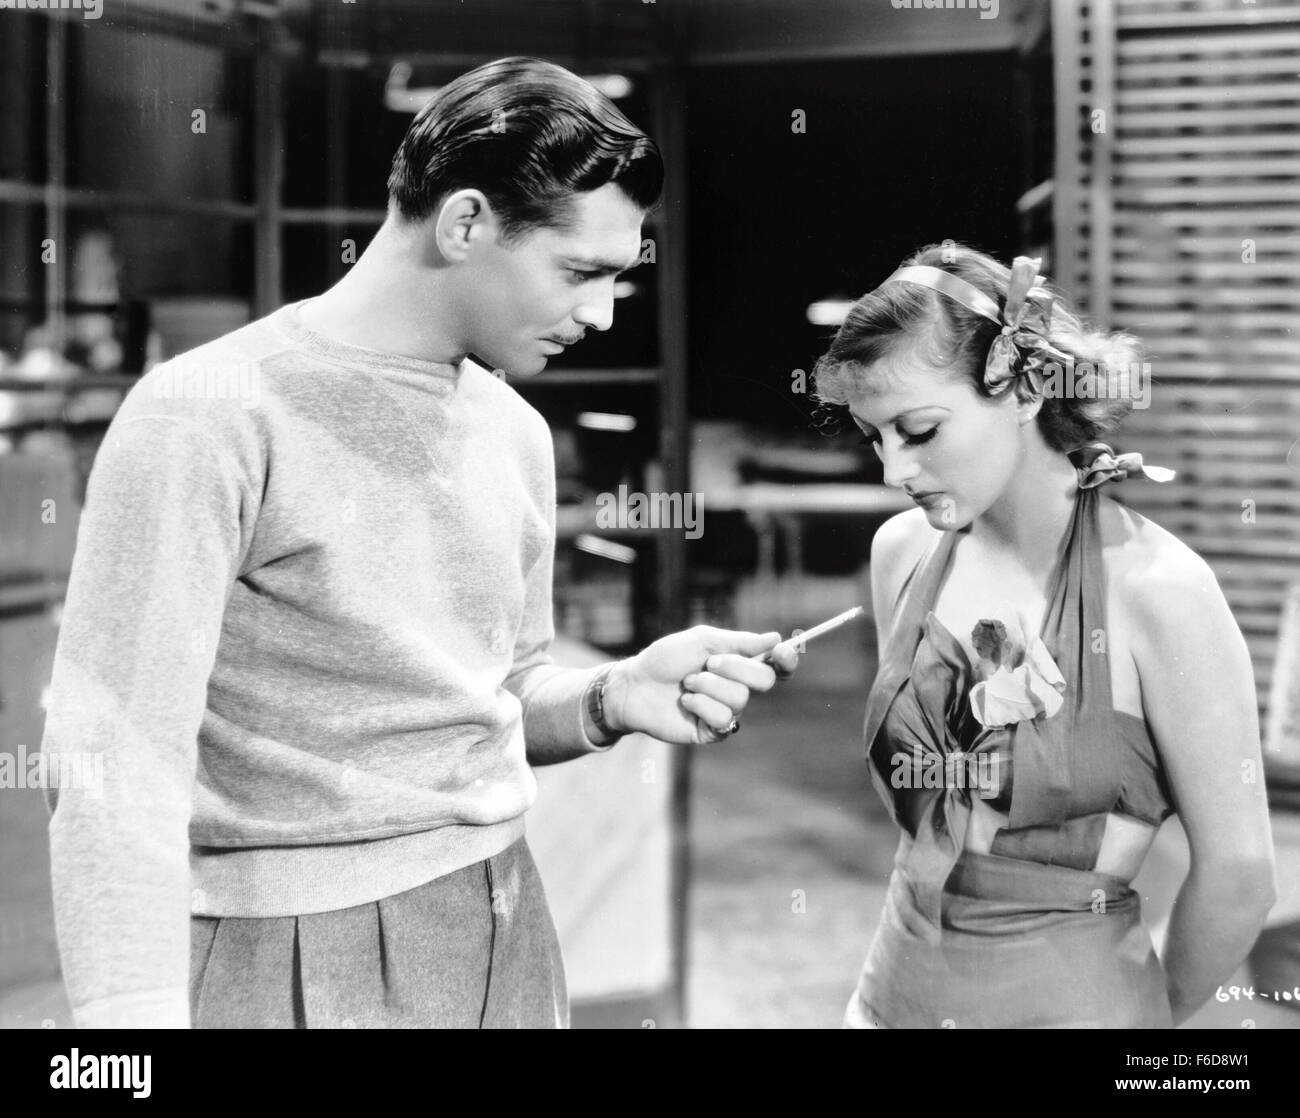 Release Date November 24 1933 Movie Title Dancing Lady